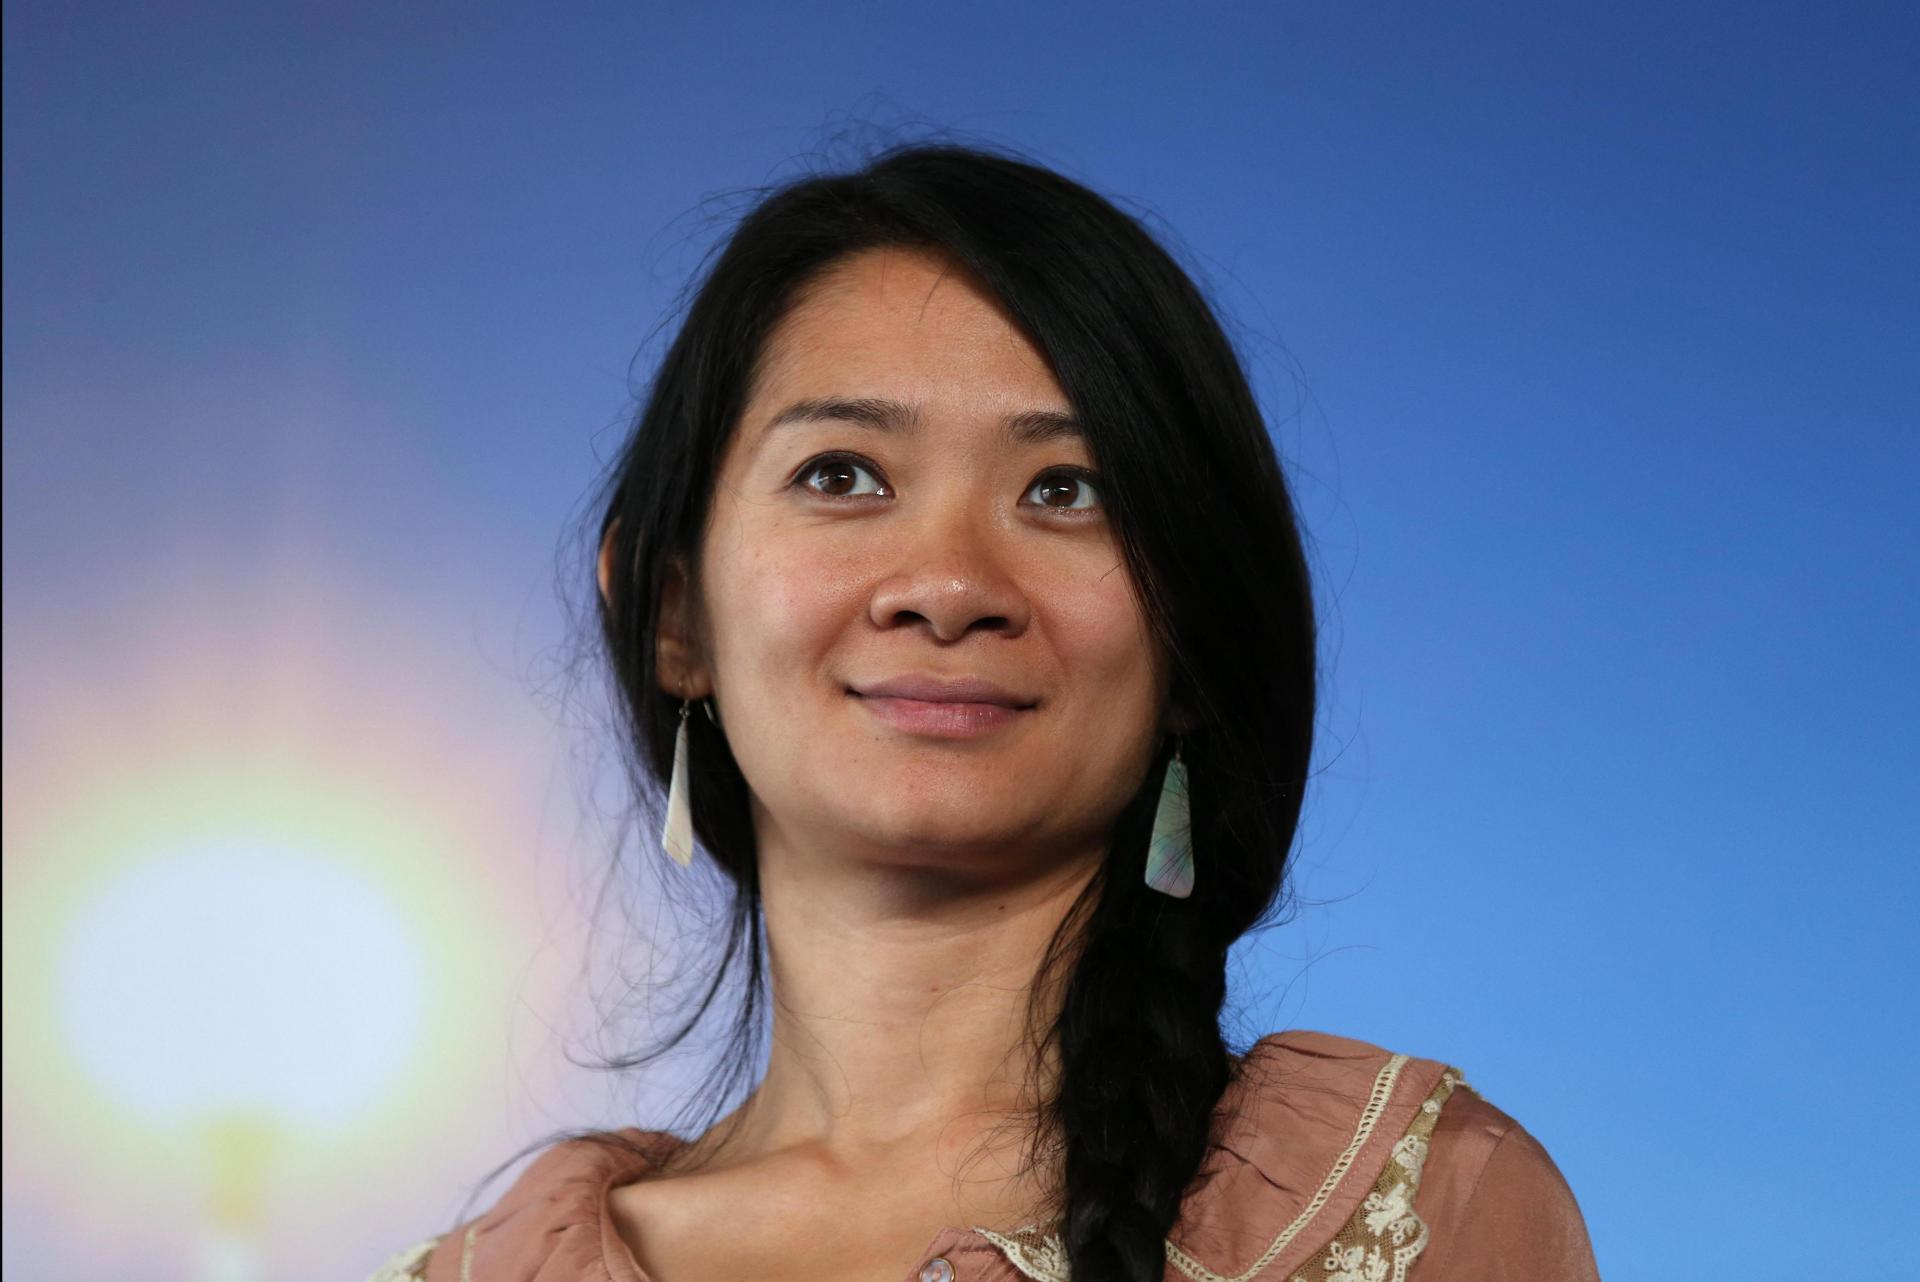 Chloe Zhao became the first female director to win the awards' top prize for best drama. Photo: Charly Triballeau/AFP